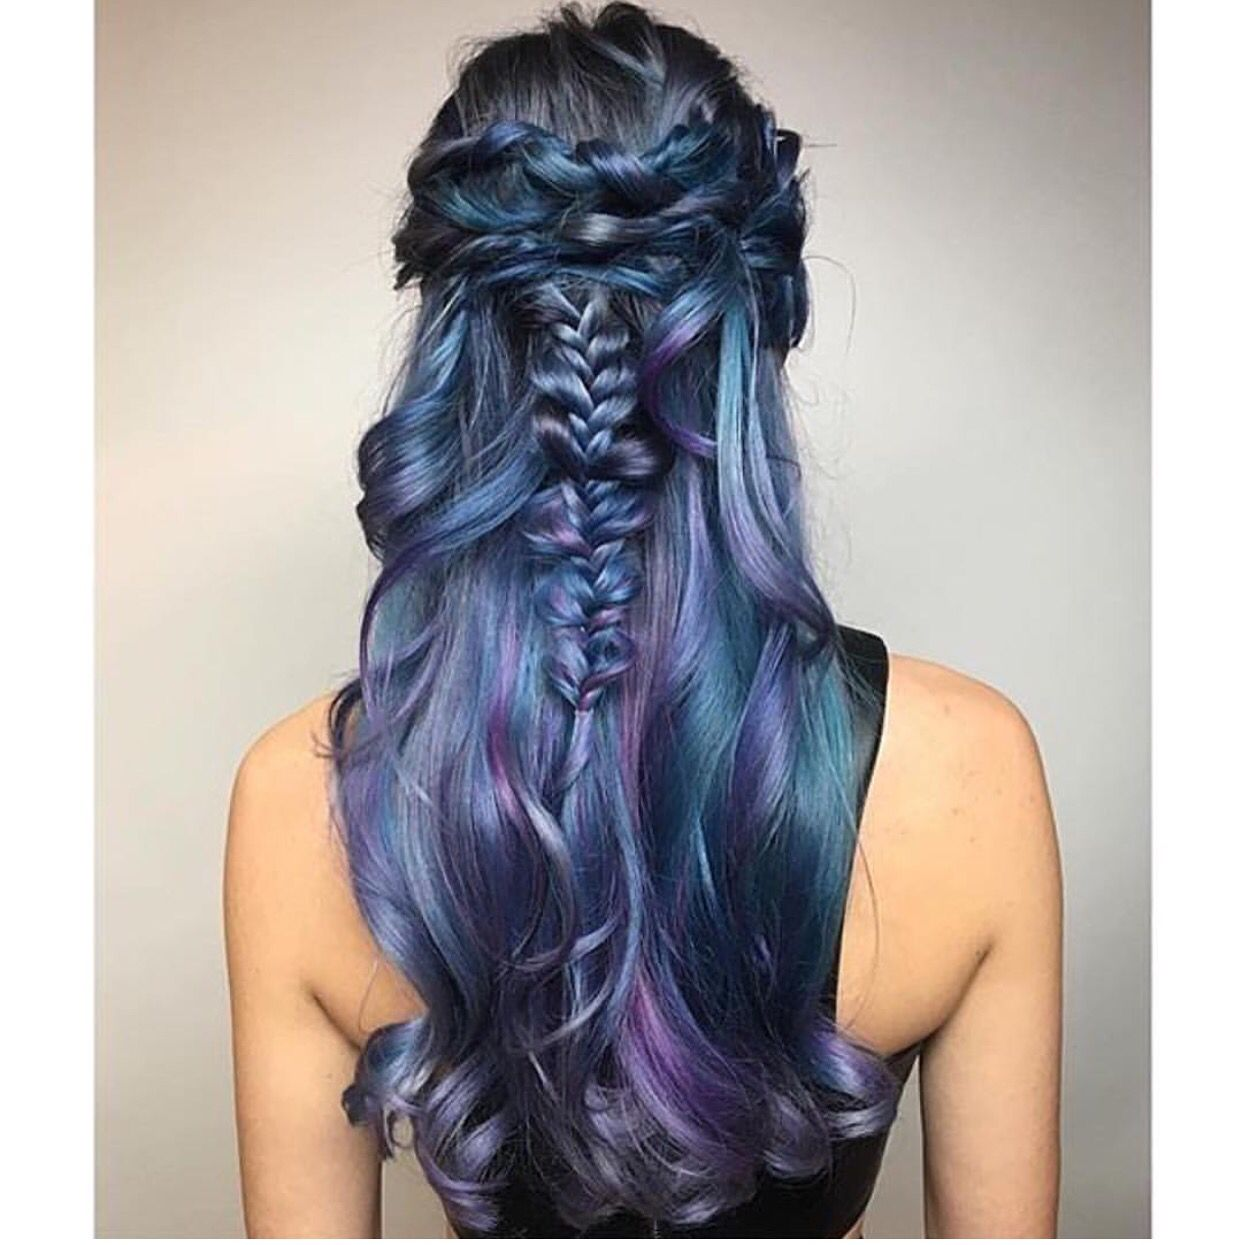 Gorgeous Blue And Metallic Purple Hair Color And Exquisite Braid Braided Style By Kim Wasabi Long Hair Www Hotonbeauty Co Hair Styles Purple Hair Guy Tang Hair